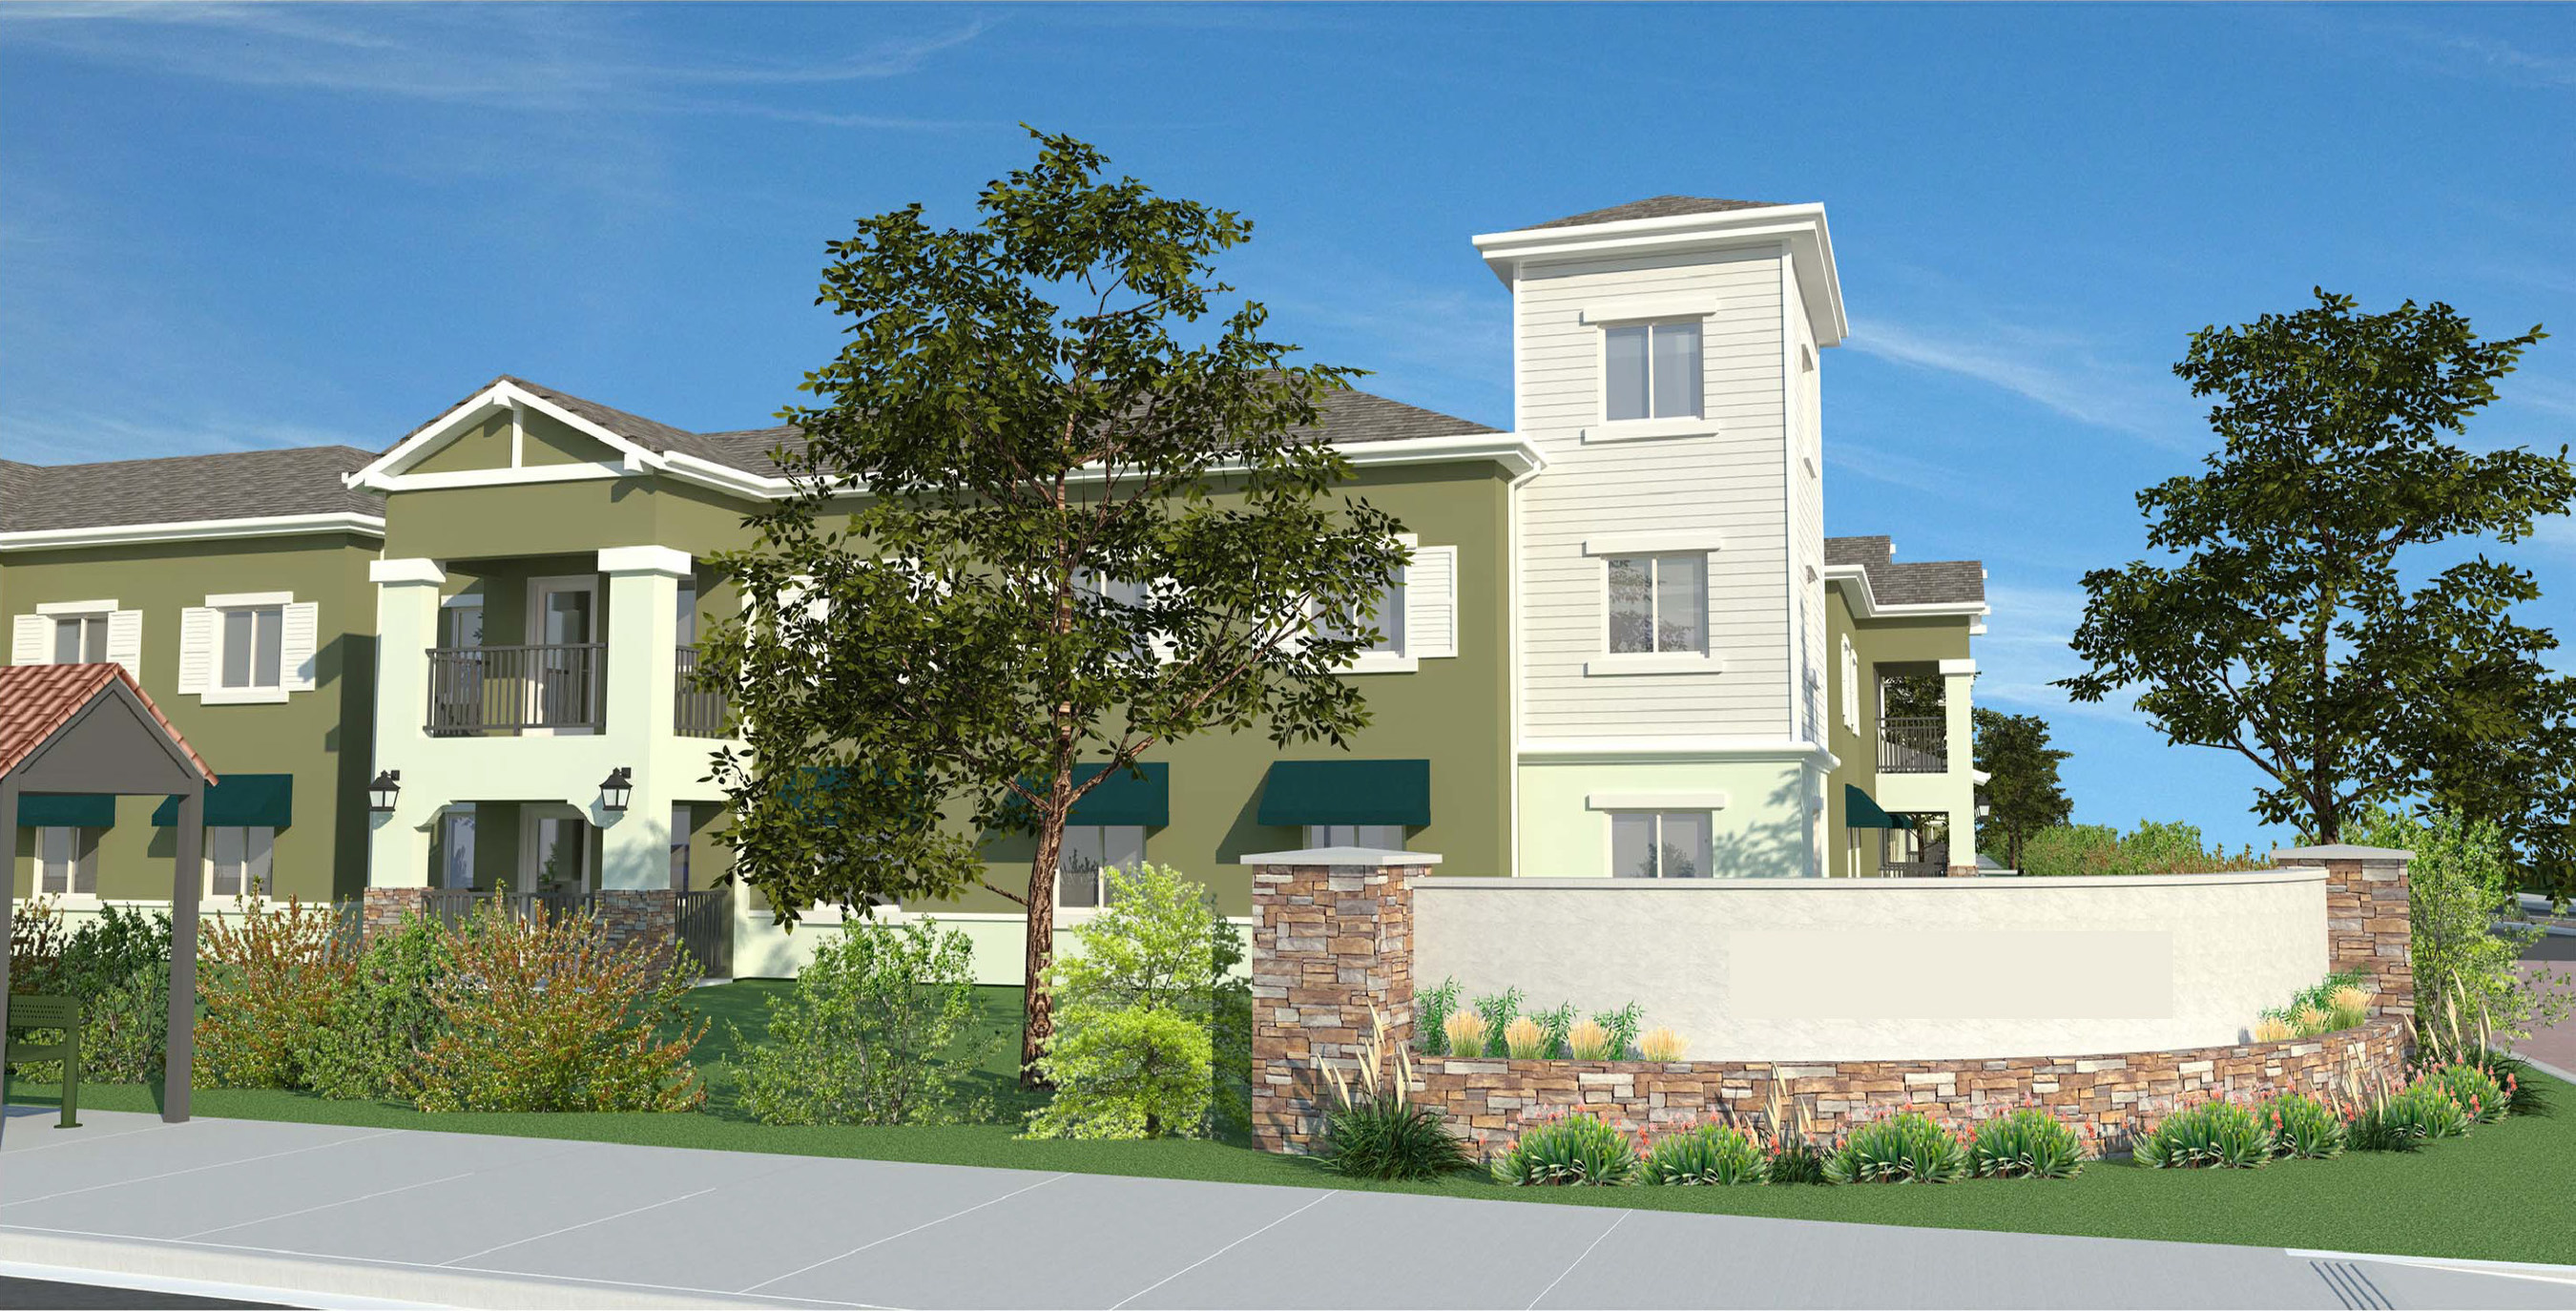 Atascadero Apartments is the new construction of 60 family units housed in one 2-story and one 3-story elevator served residential buildings. The Project is situated on approximately 3.5 acres on a residential street in the City of Atascadero, San Luis Obispo County, California.